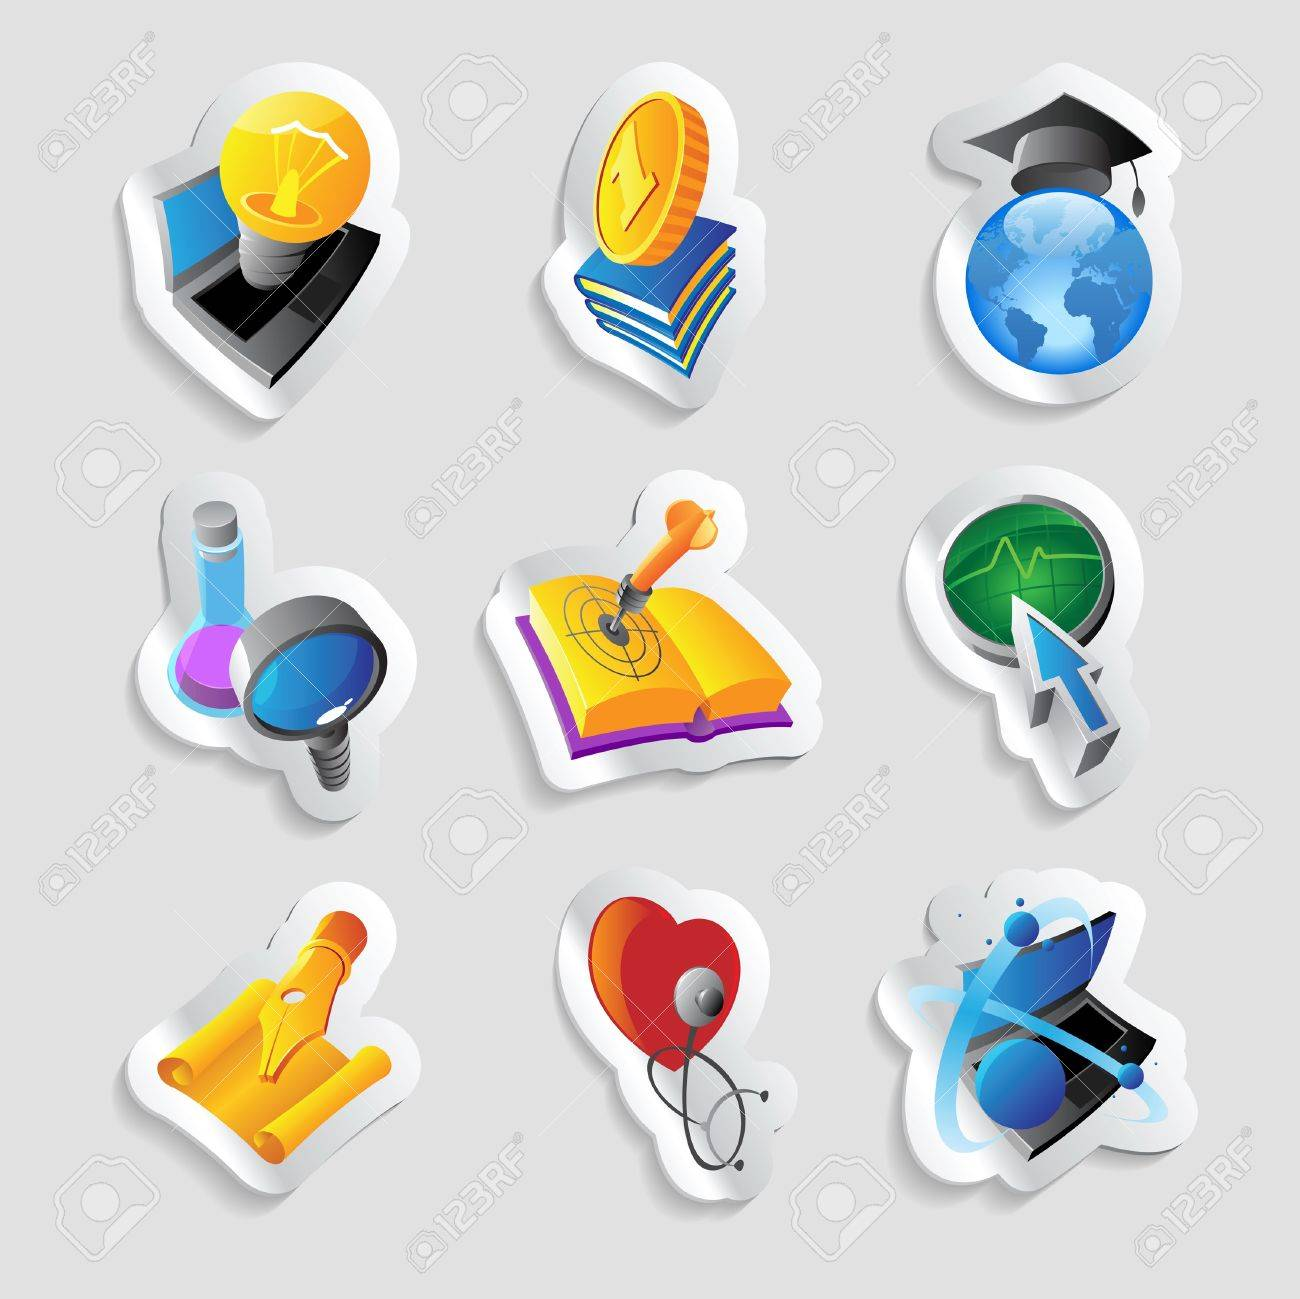 Icons for science, education and medicine. Stock Vector - 15658610